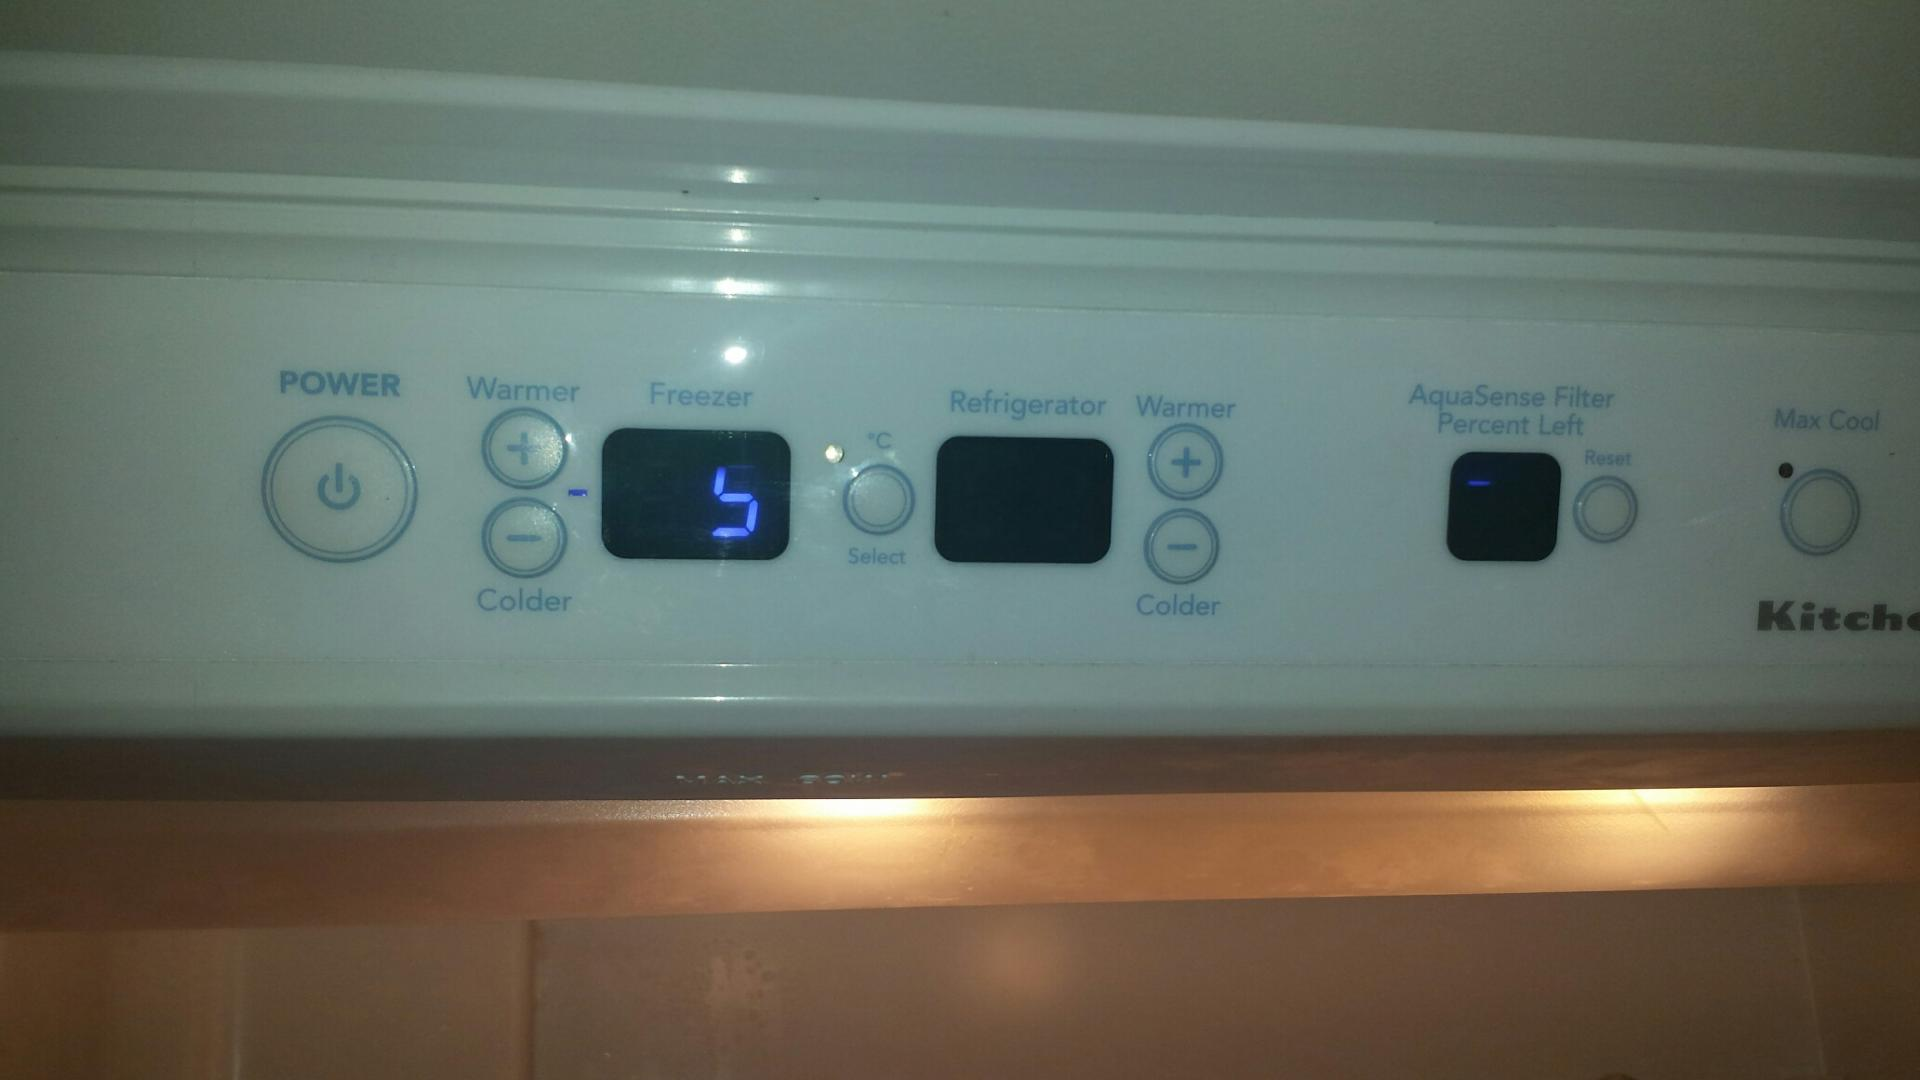 Kitchenaid refrigerator not cooling adequately water dripping lower ...